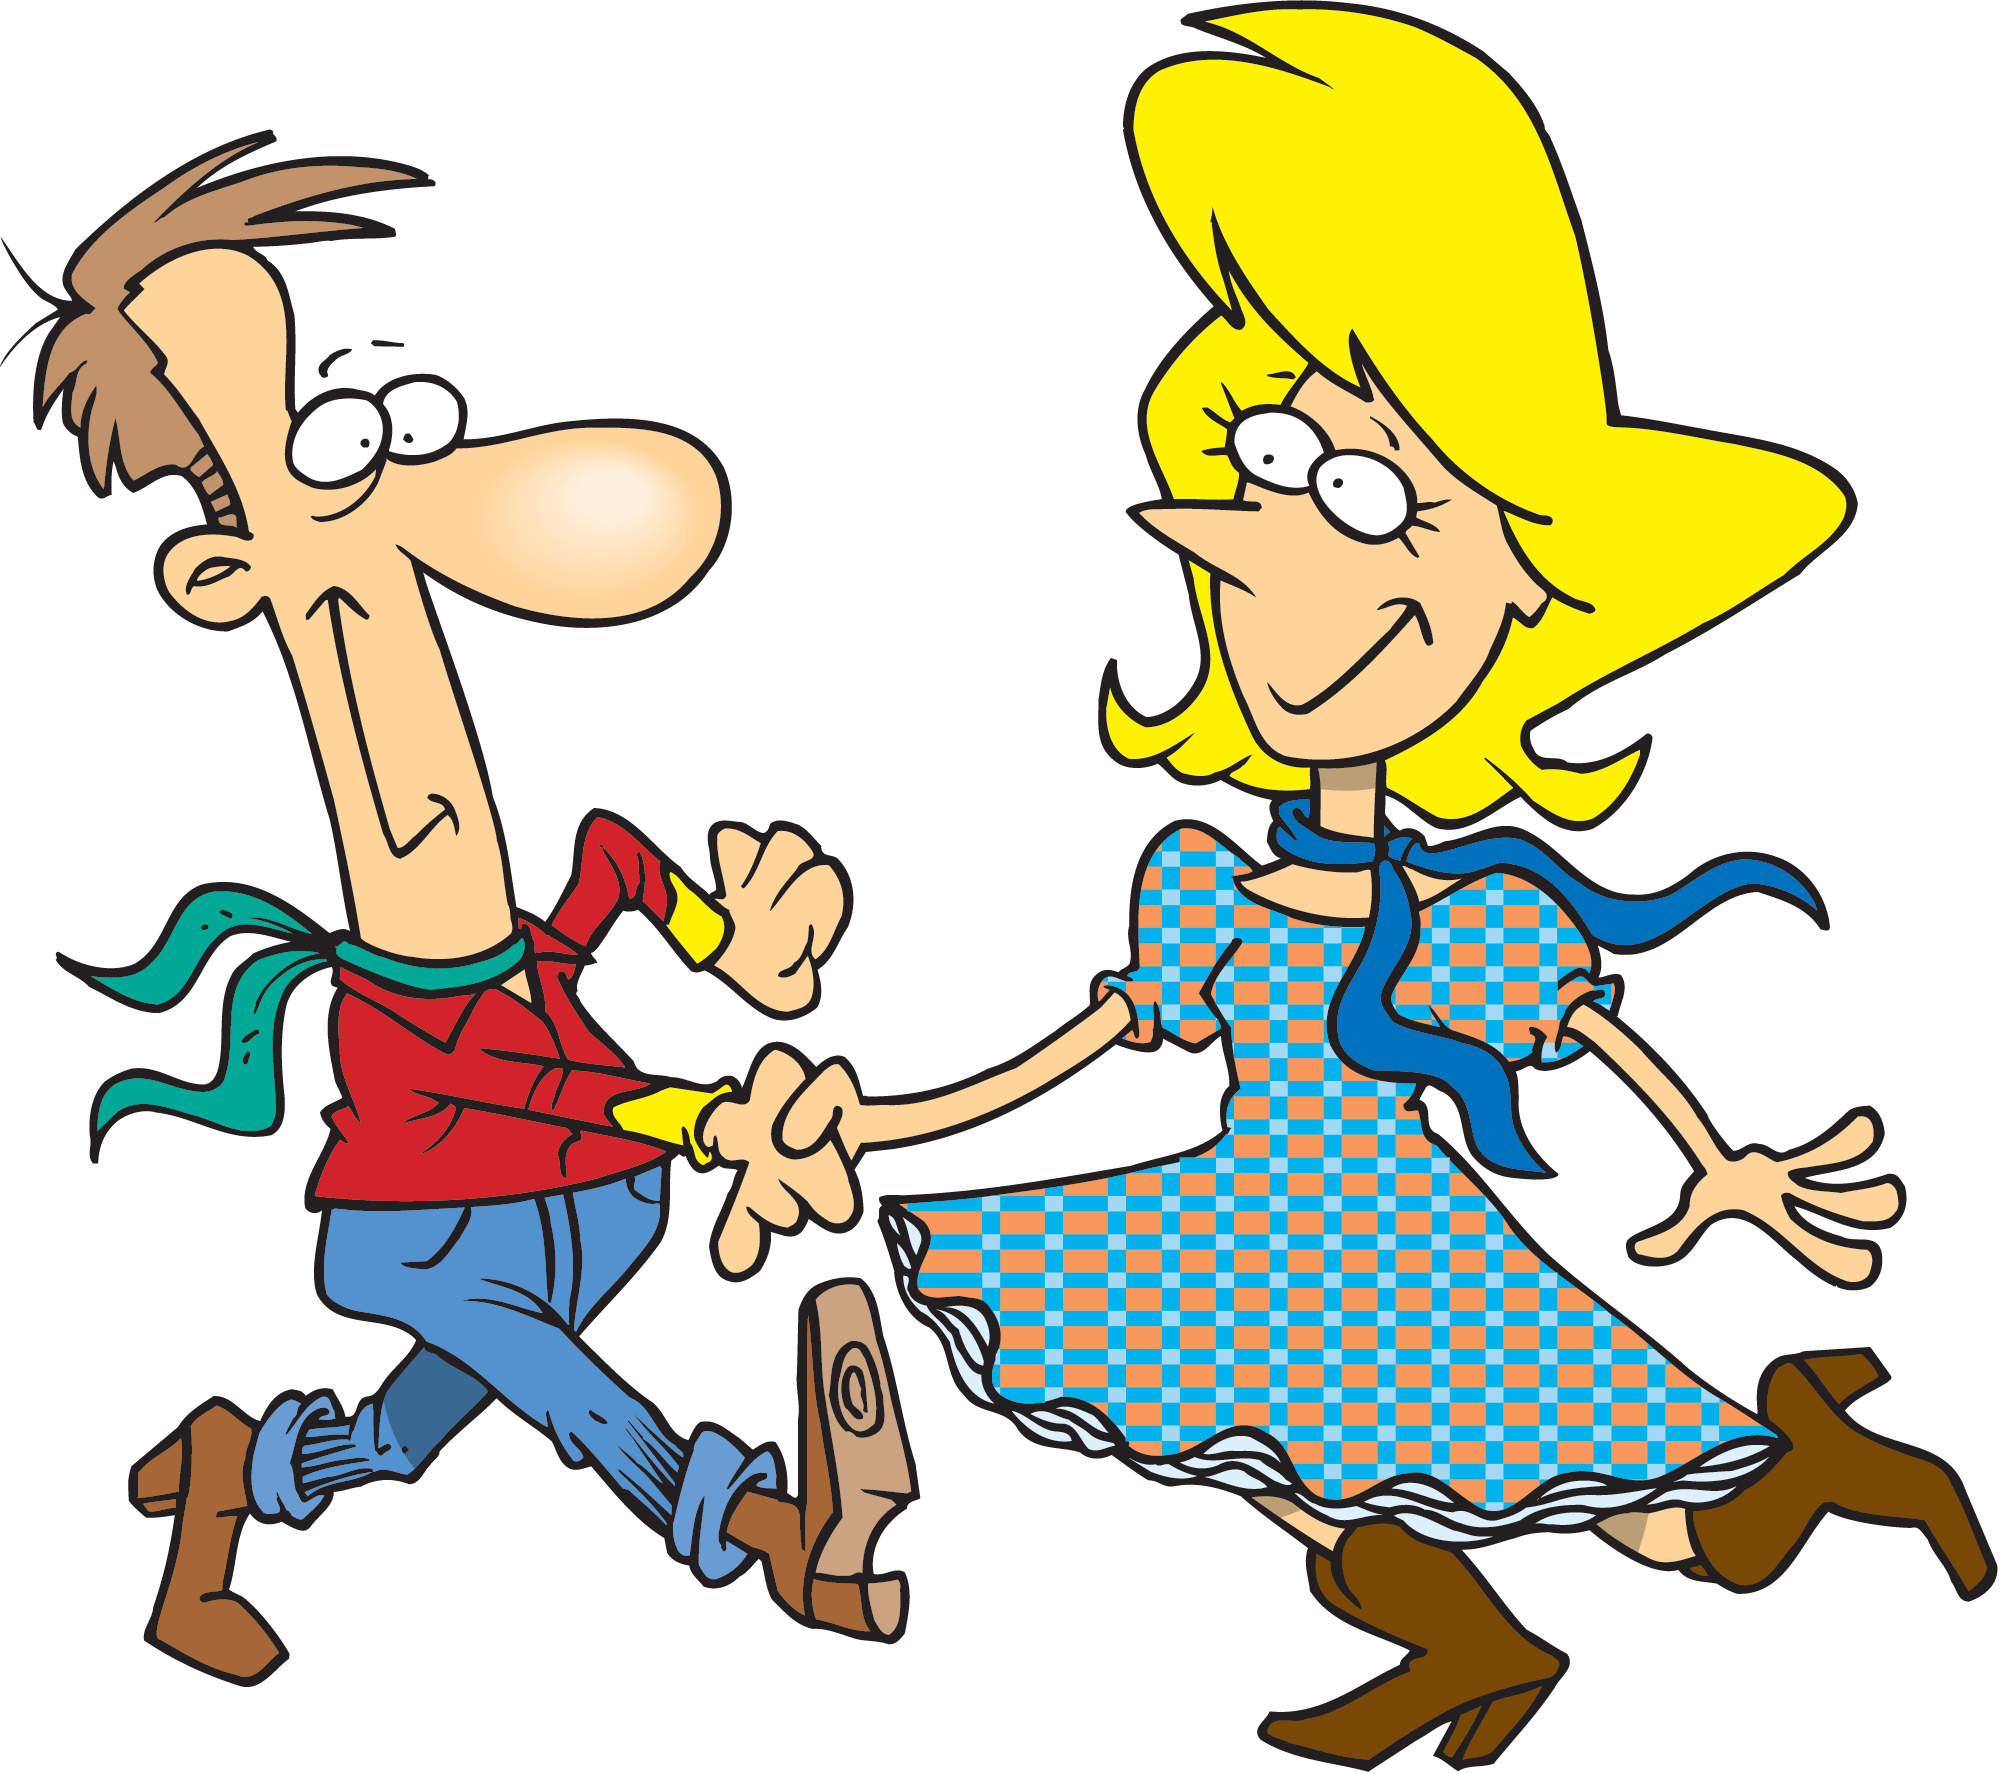 Funny Dancing Cartoon Images images.